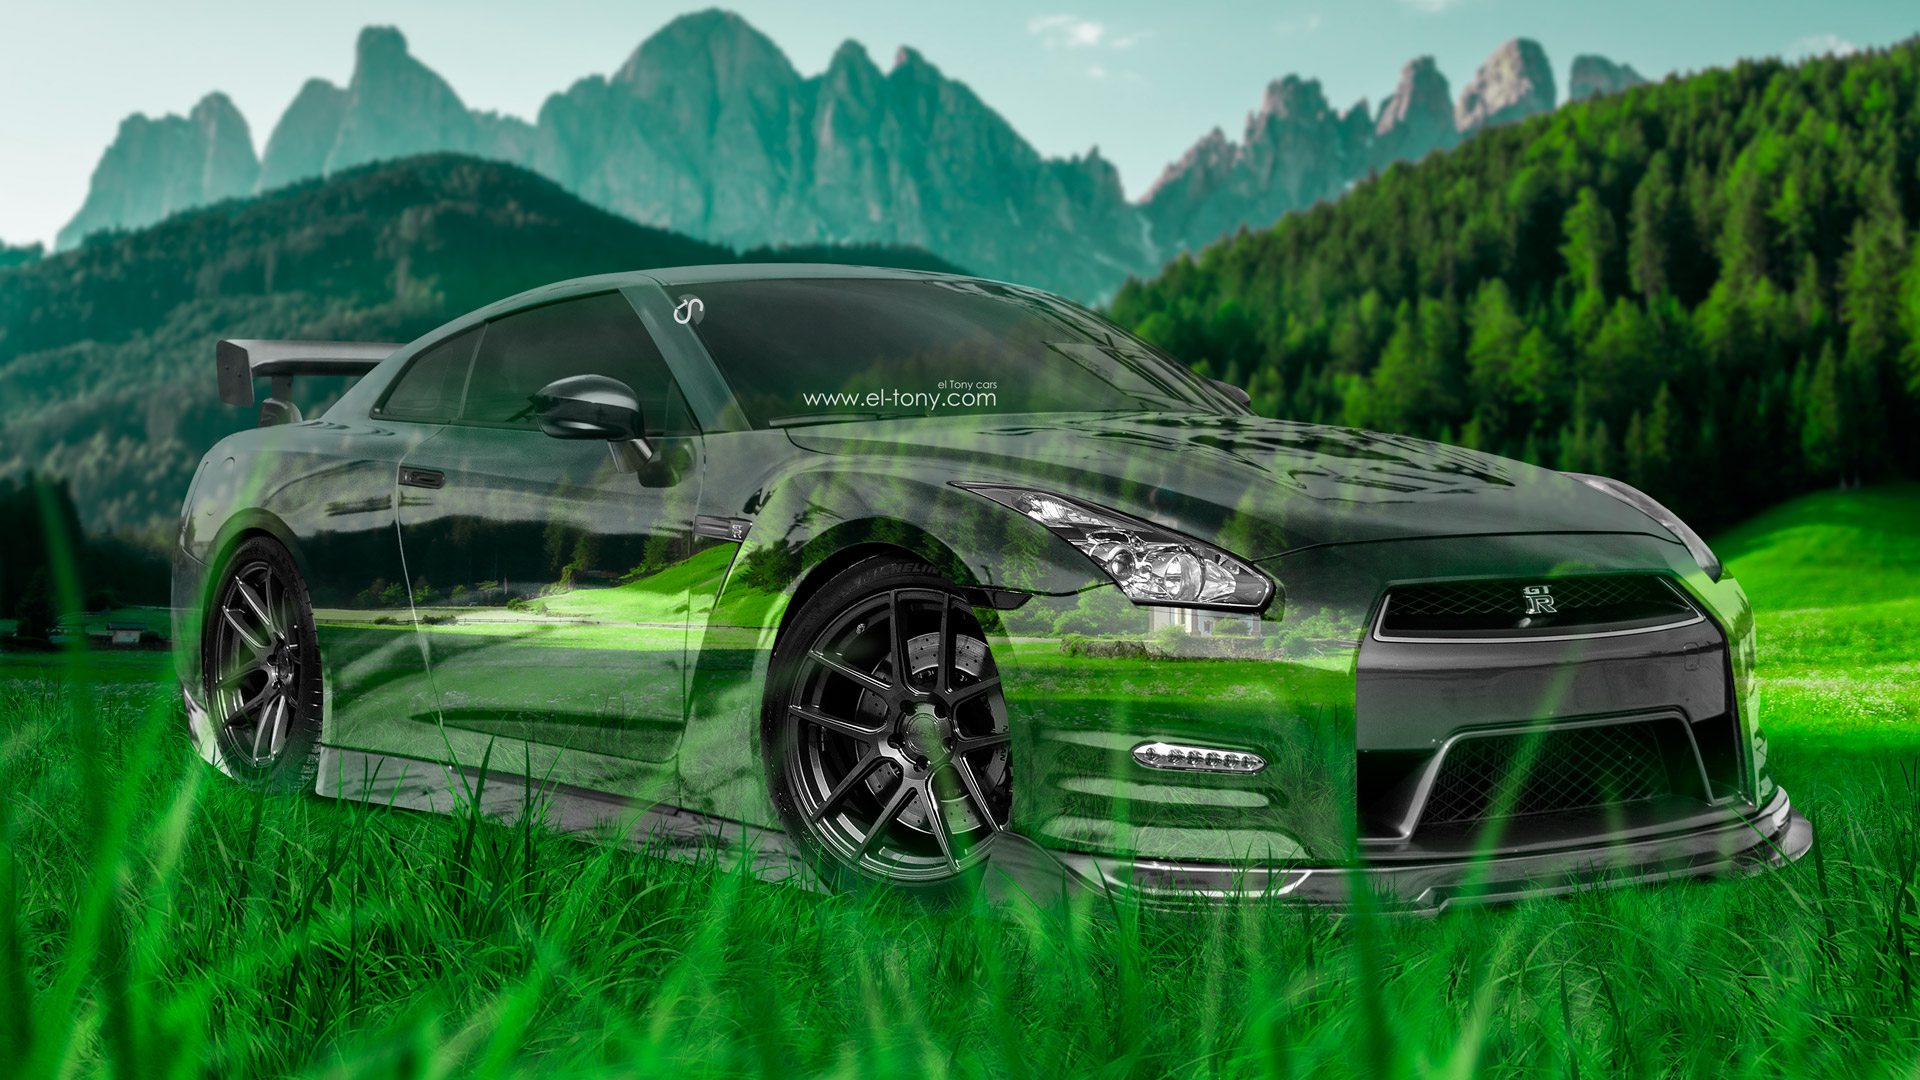 Car Wallpapers Hd 2015